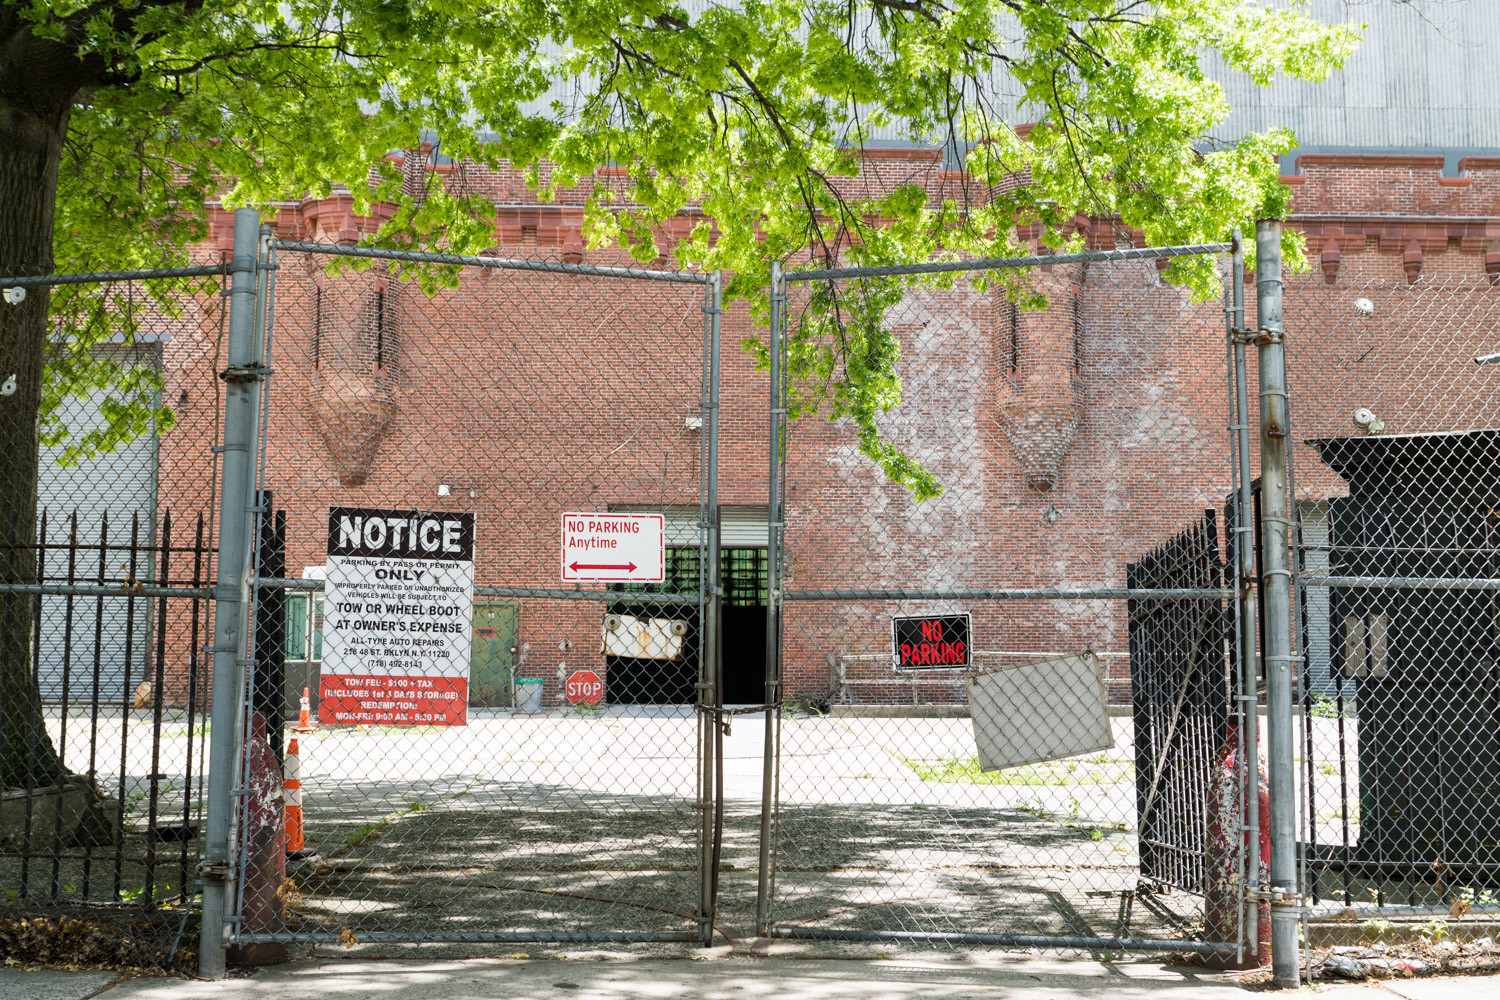 The Kingsbridge Armory has been closed to the public for years, almost completely surrounded by a chain-link fence. That could change now that former New York Rangers center Mark Messier is moving forward with his plans to turn the historic structure into an ice rink facility.